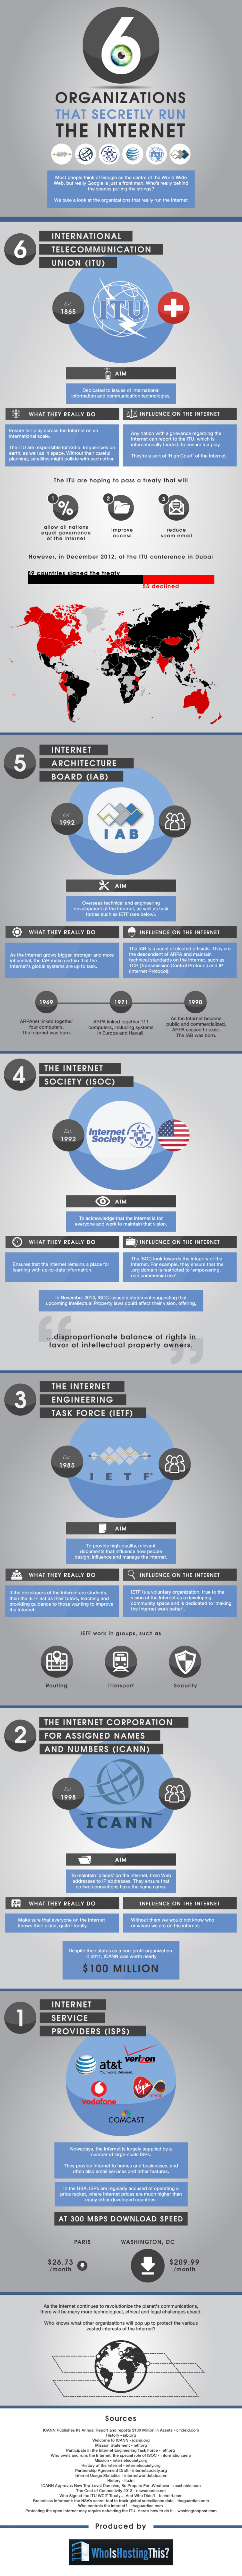 6 Organizations That Secretly Run The Internet Infographic